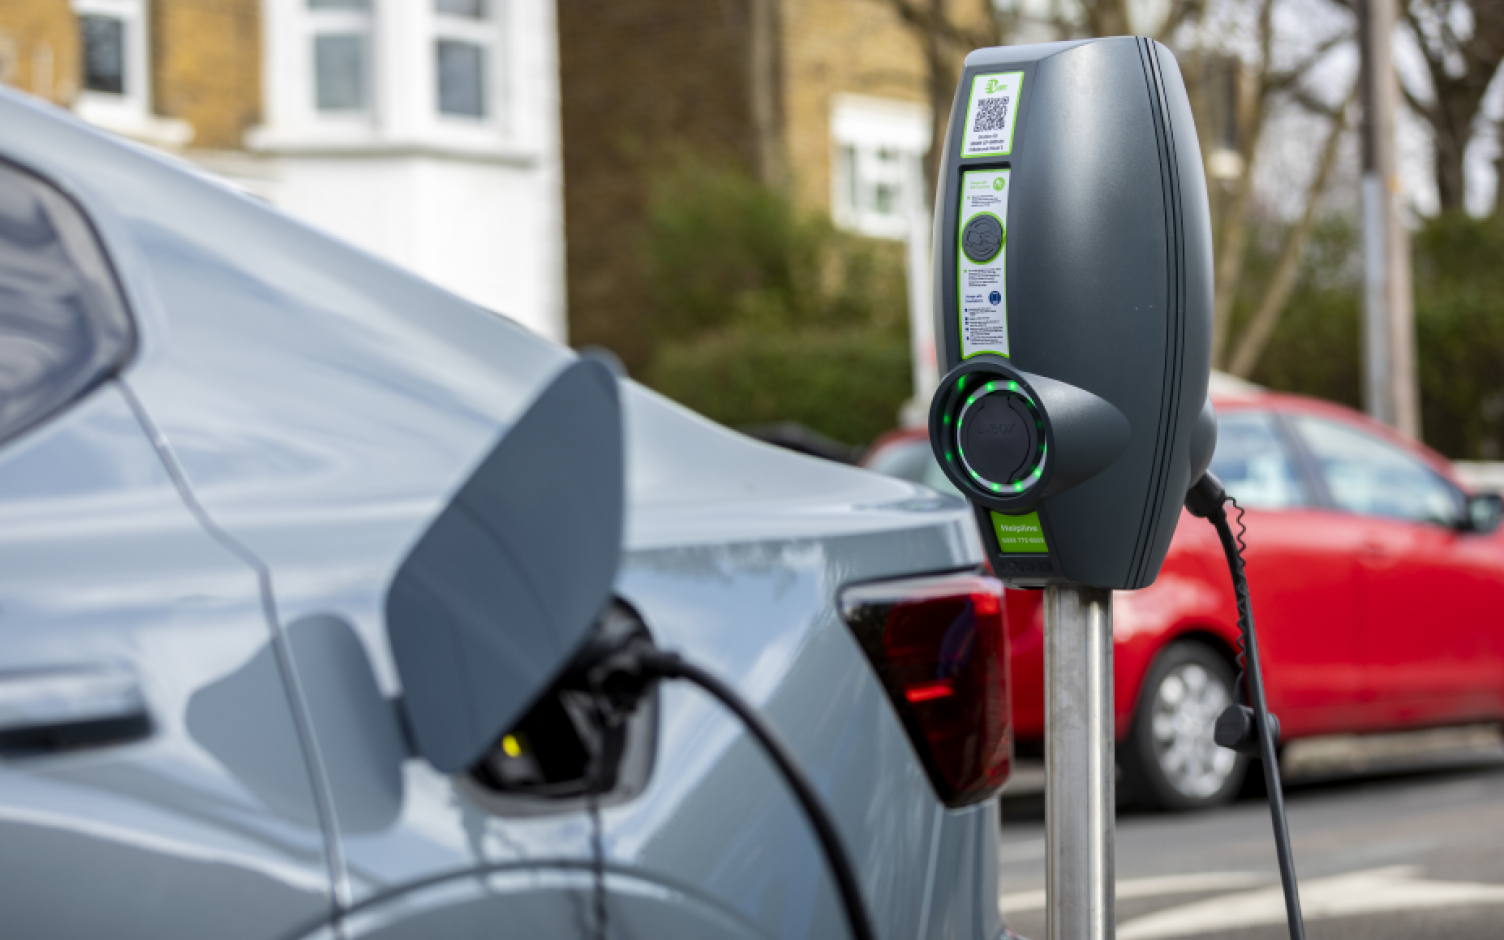 Liberty Charge is a joint venture between Liberty Global and Zouk Capital aiming to rollout EV charging using Liberty Global's subsidiary Virgin Media's network infrastructure. Image: Liberty Global